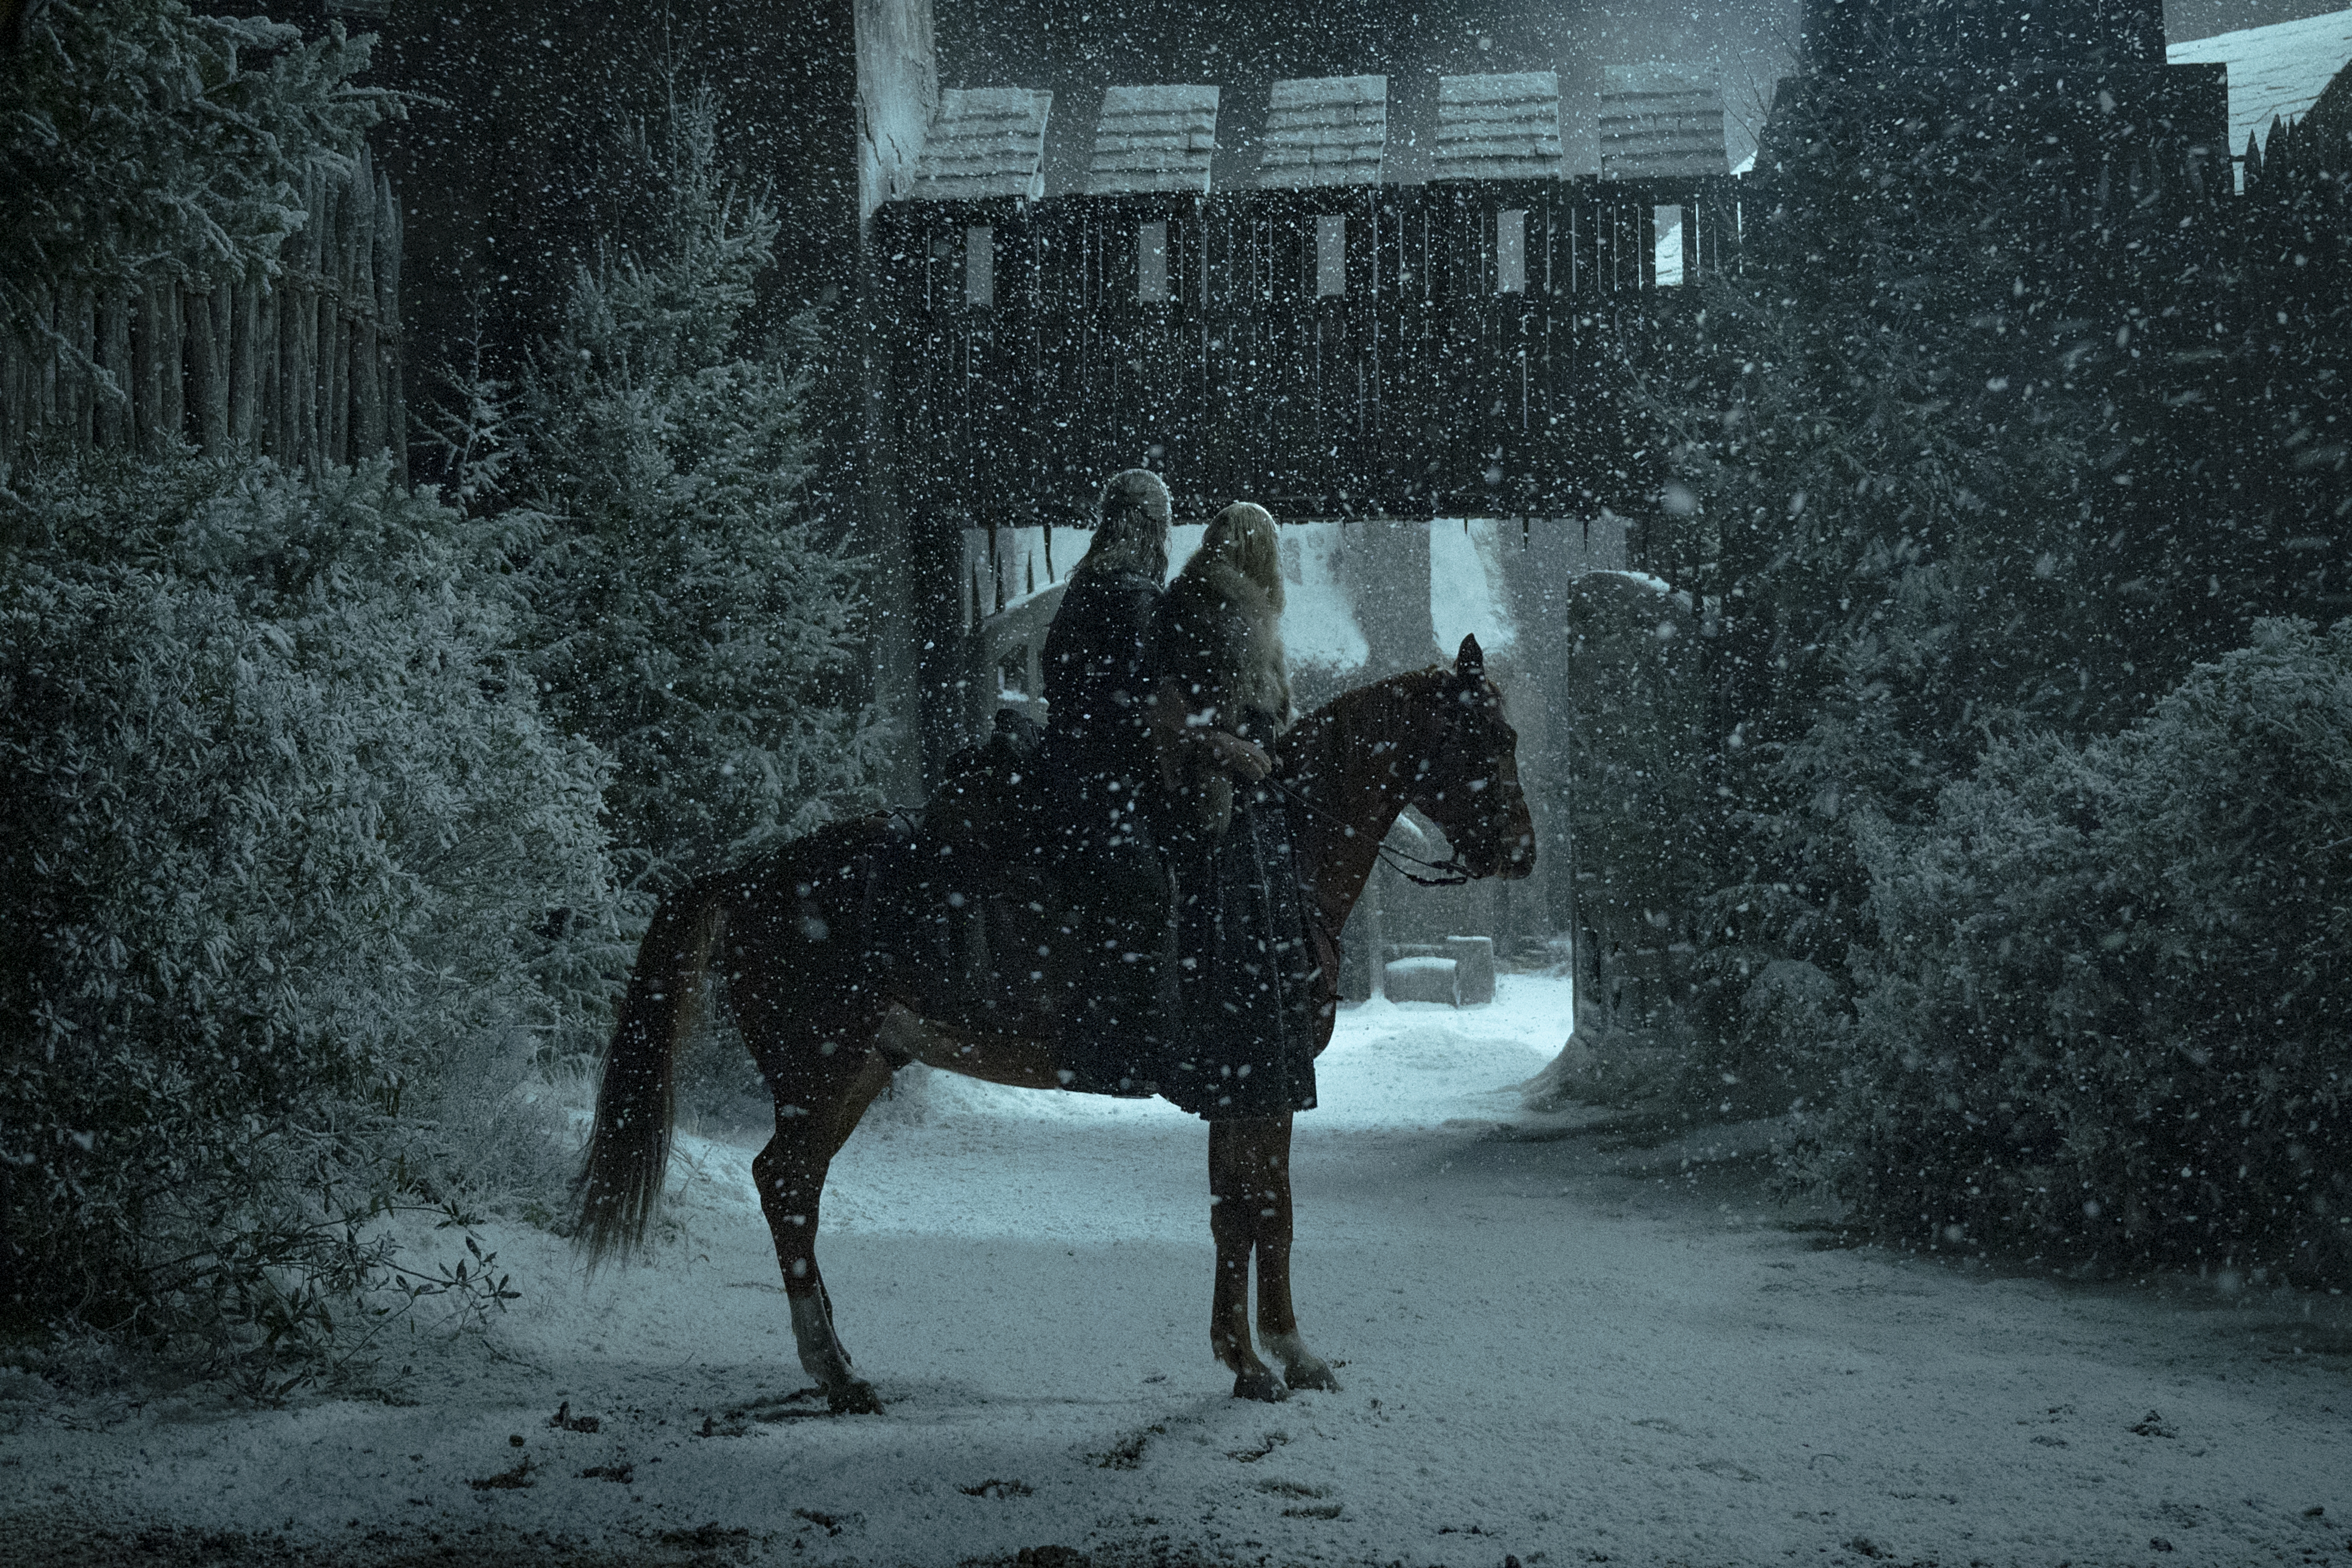 Netflix have released the teaser trailer for the upcoming second season of fantasy series The Witcher.